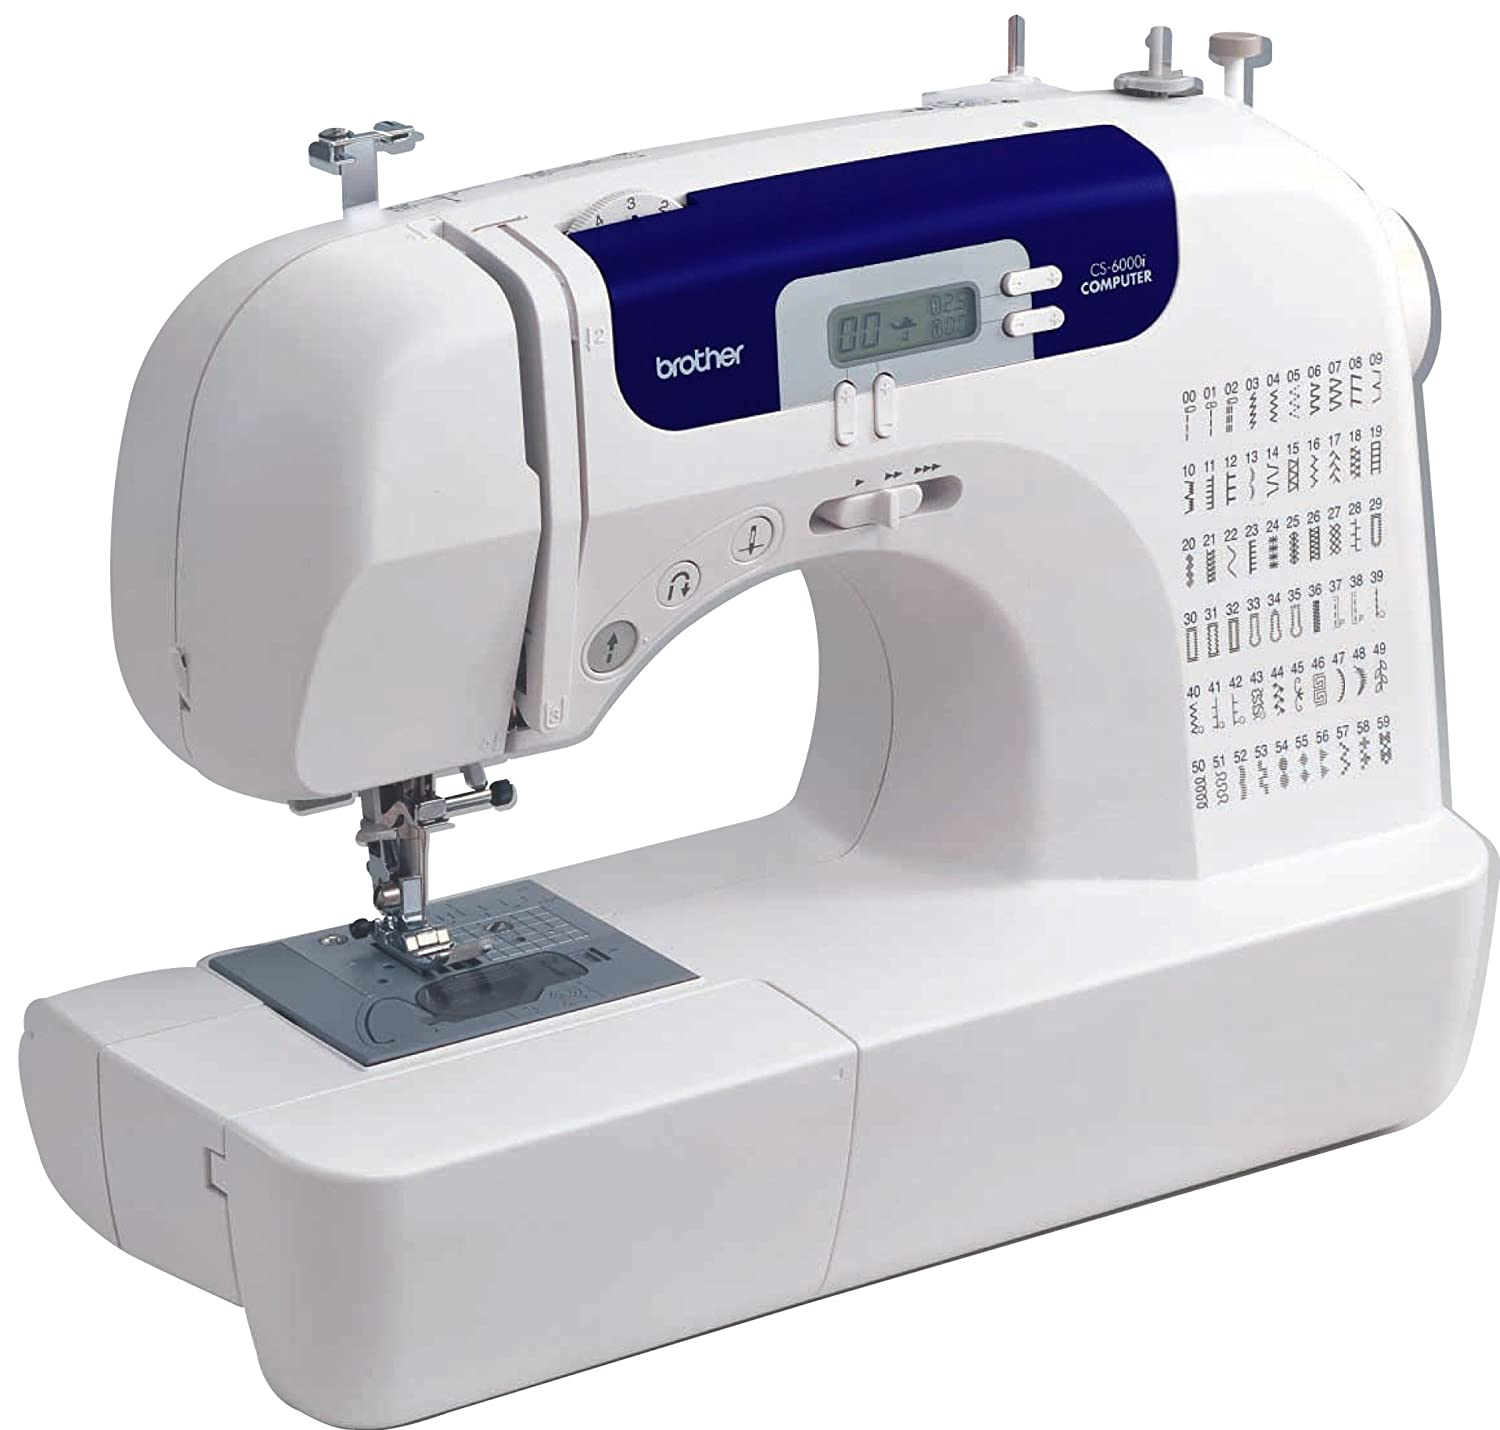 Brother-CS6000i-Feature-Rich-Sewing-Machine-2